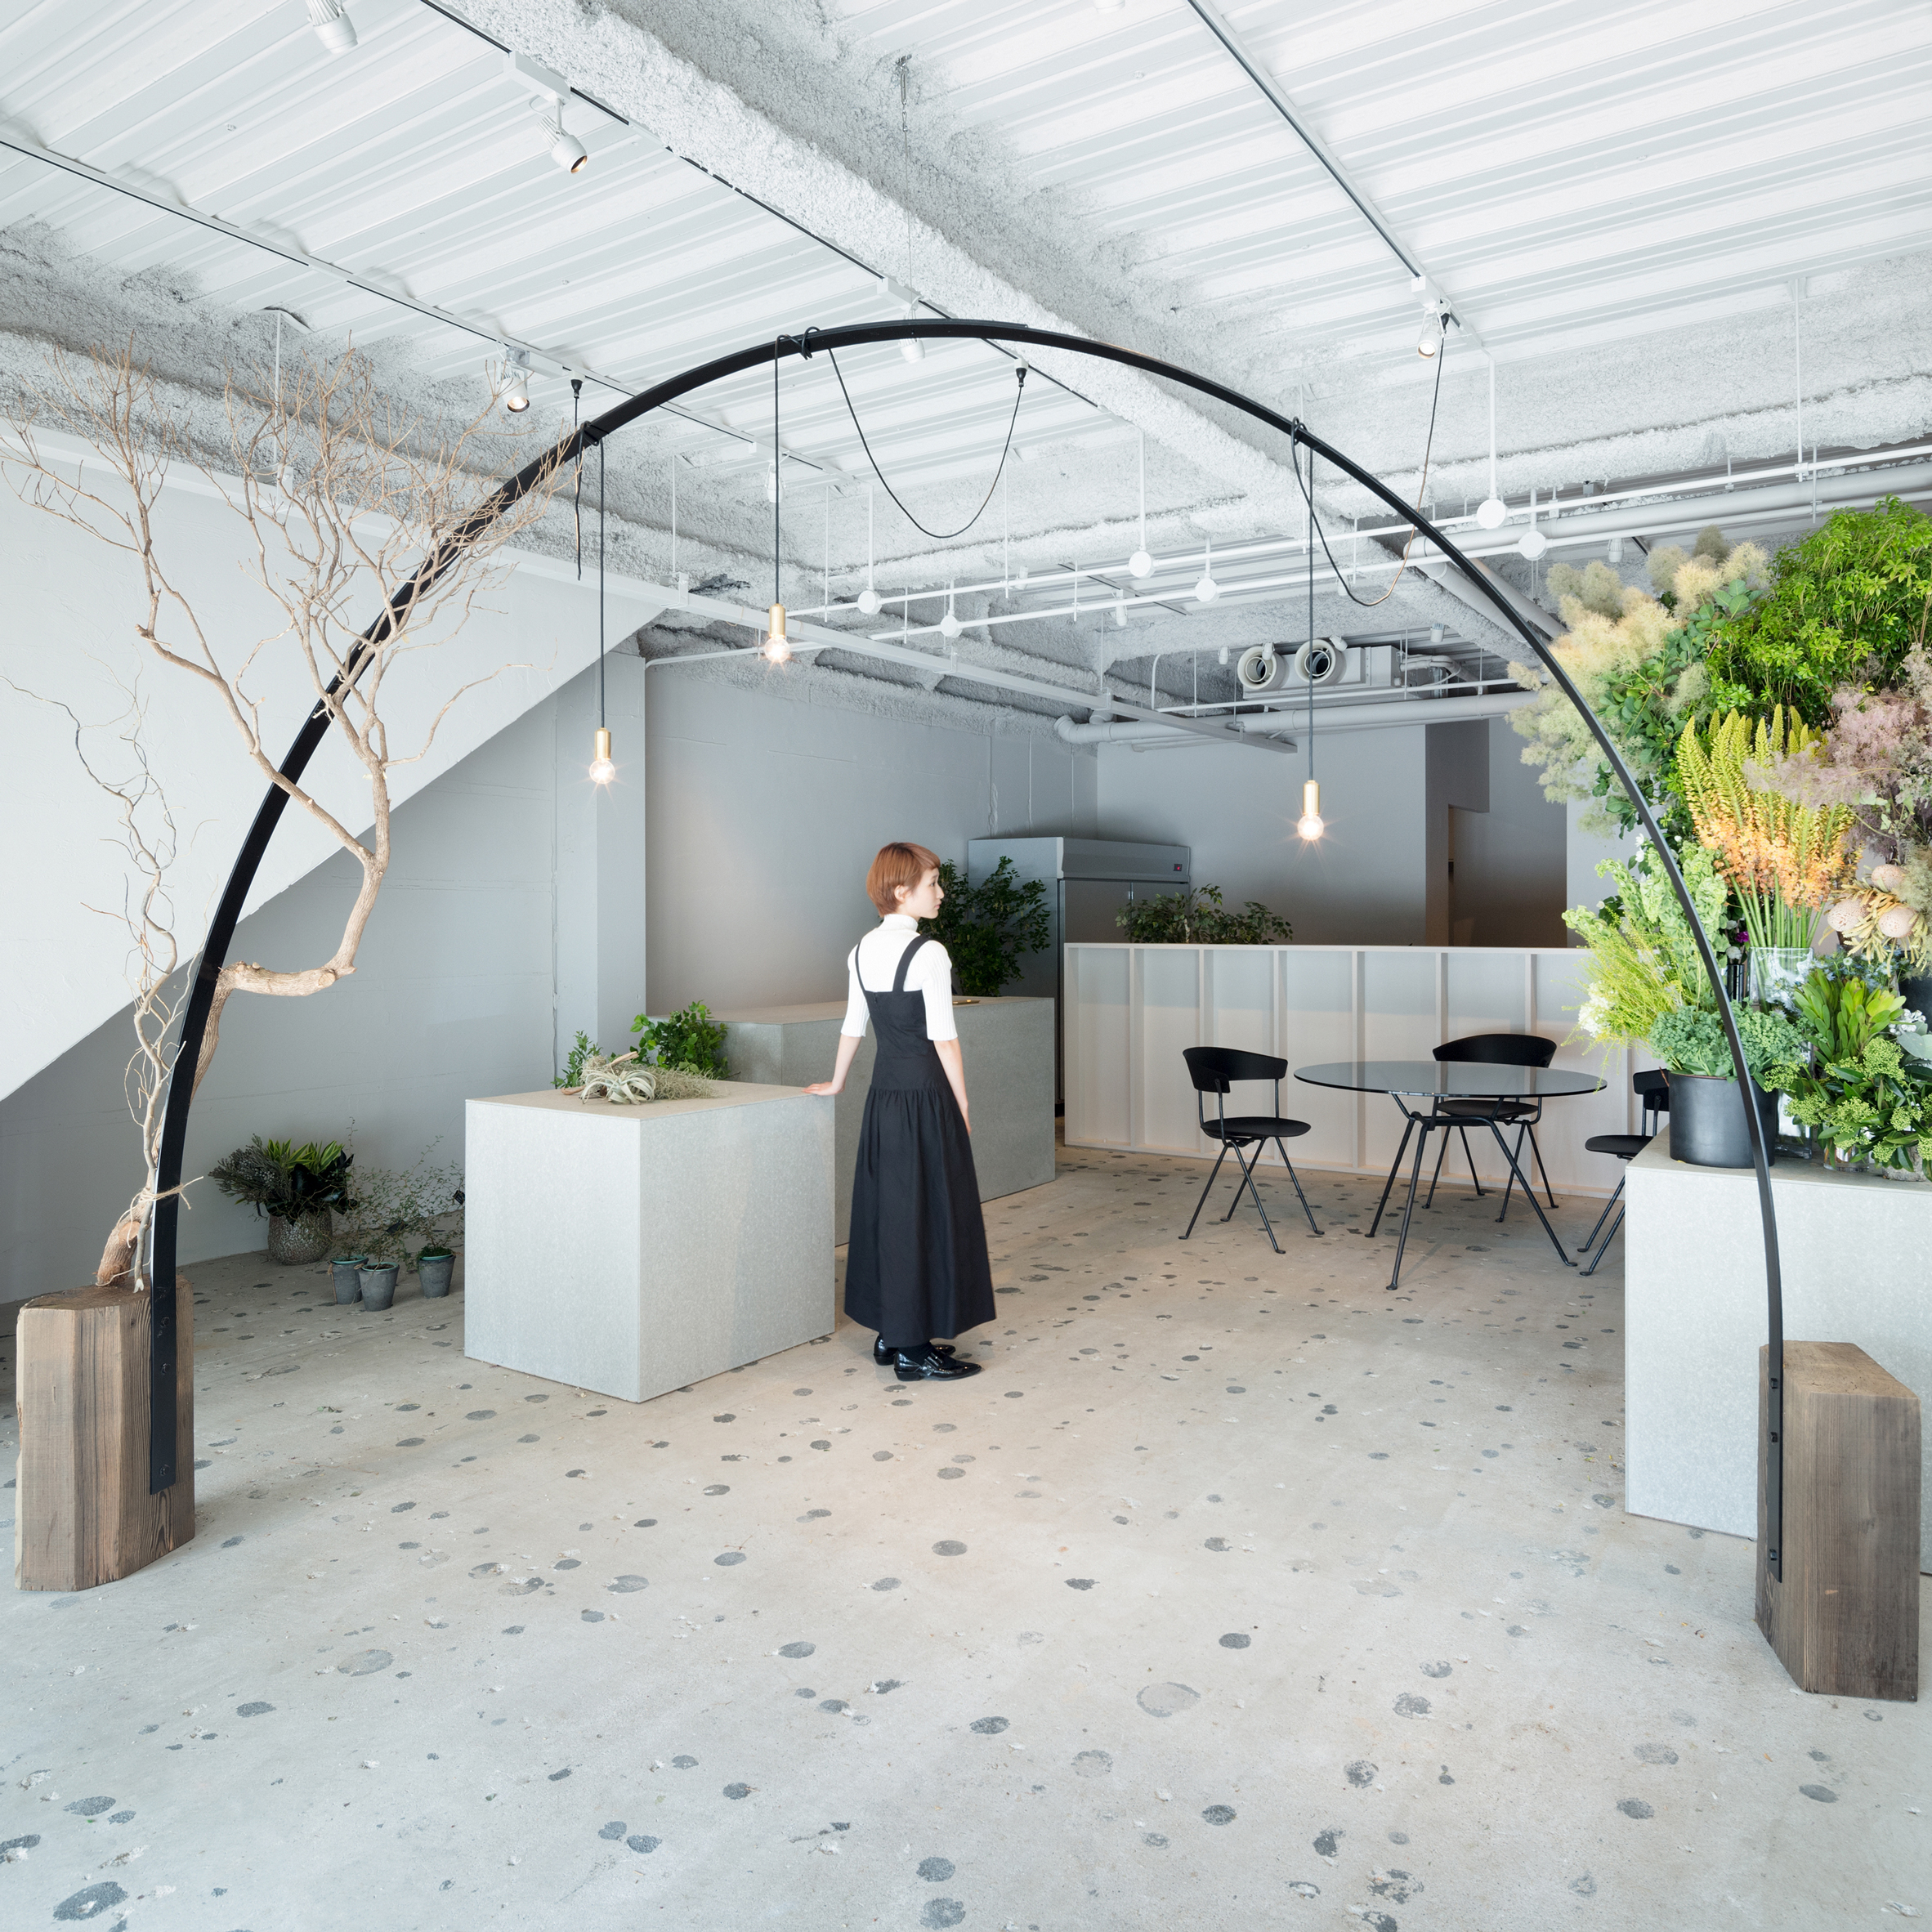 Florist architecture and interior design Dezeen